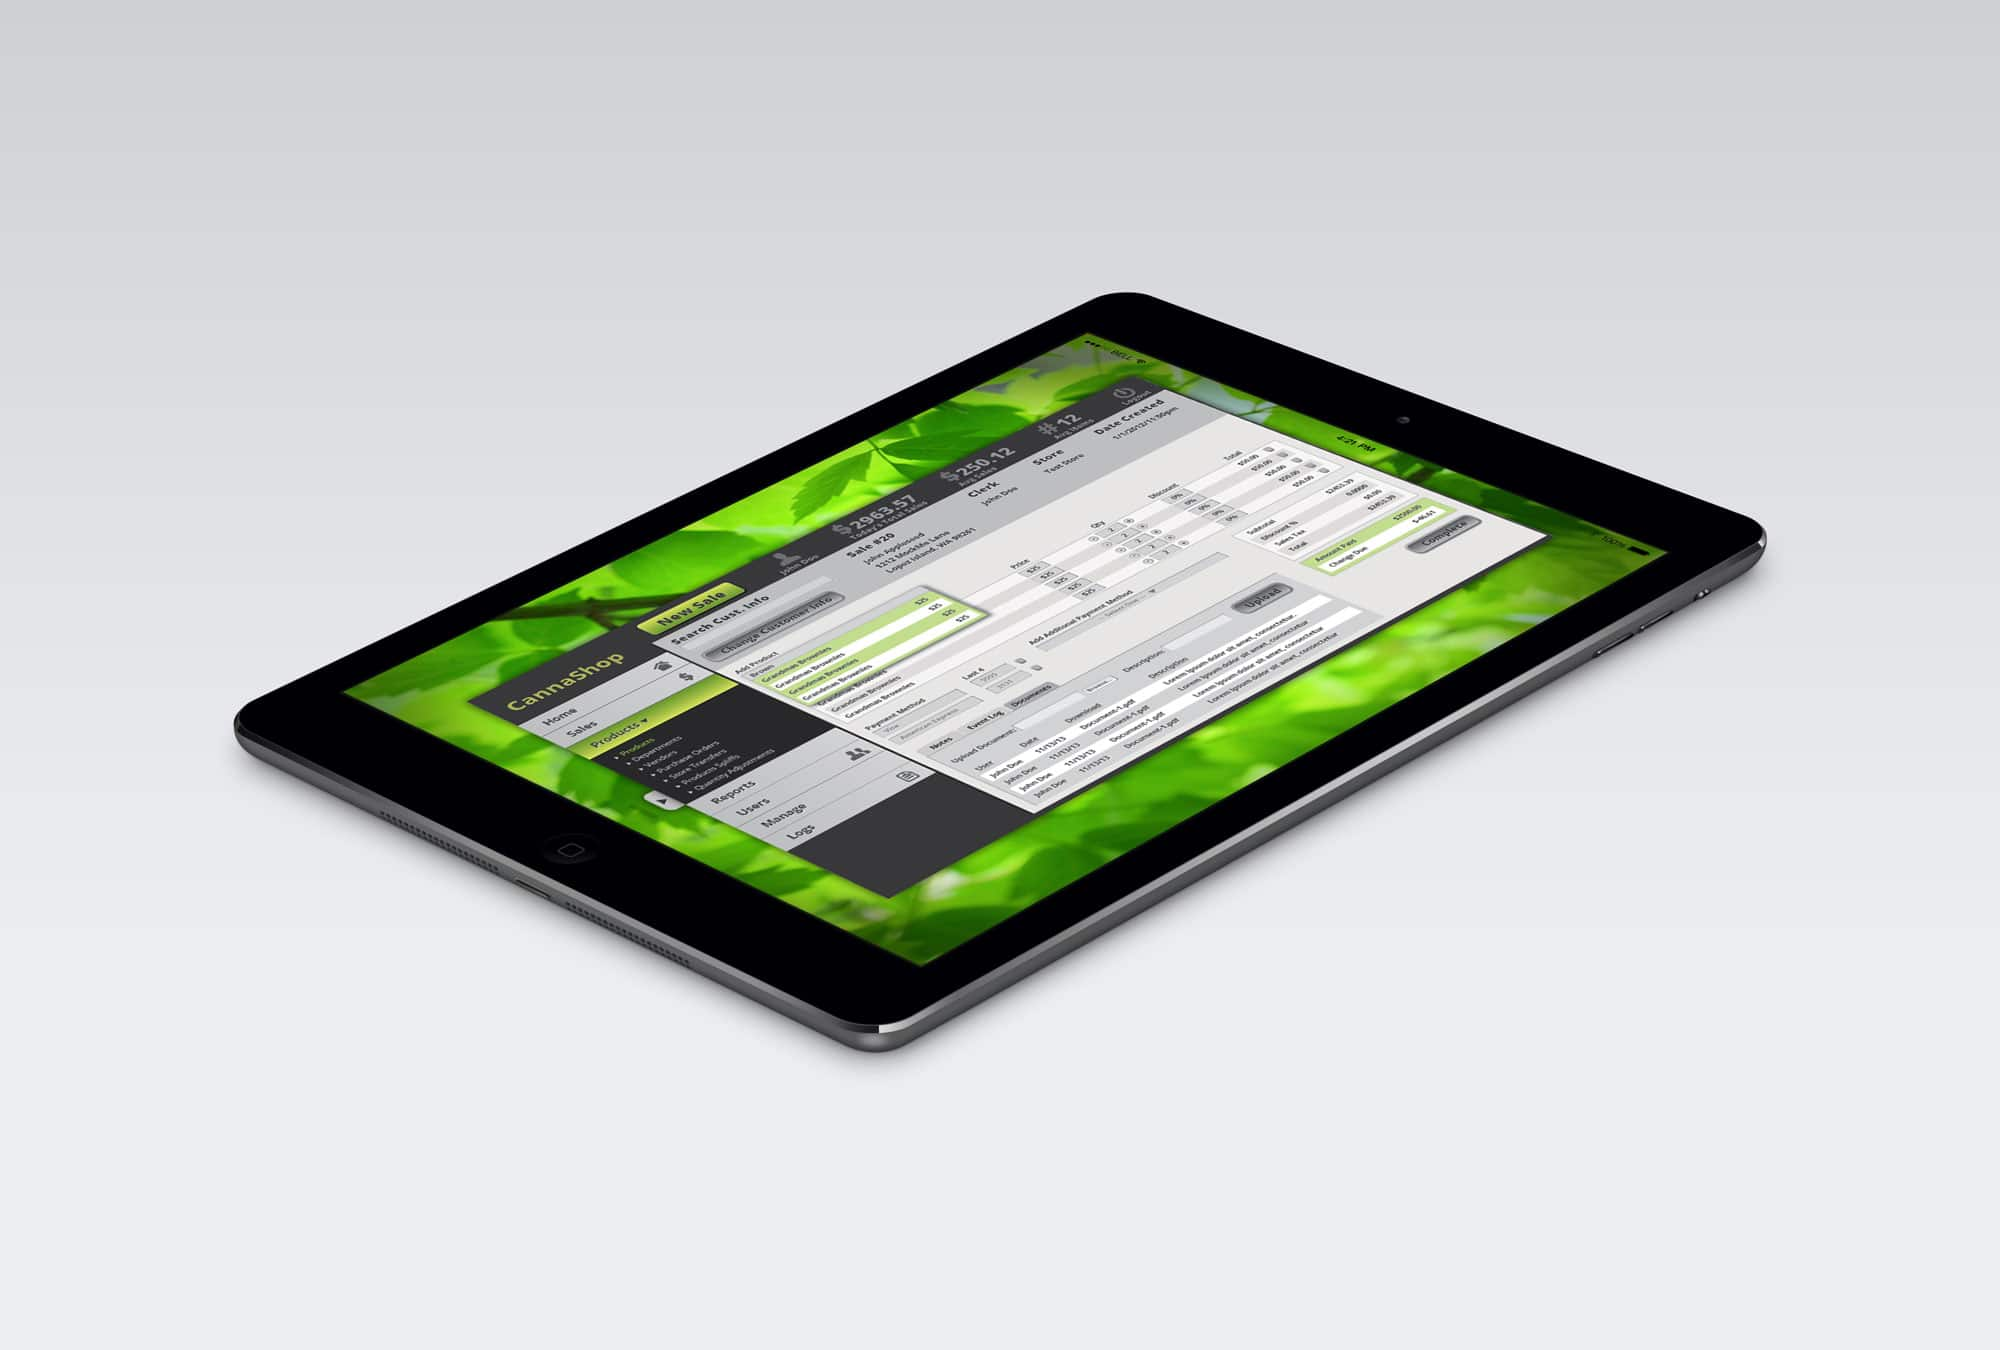 canna consult software ipad